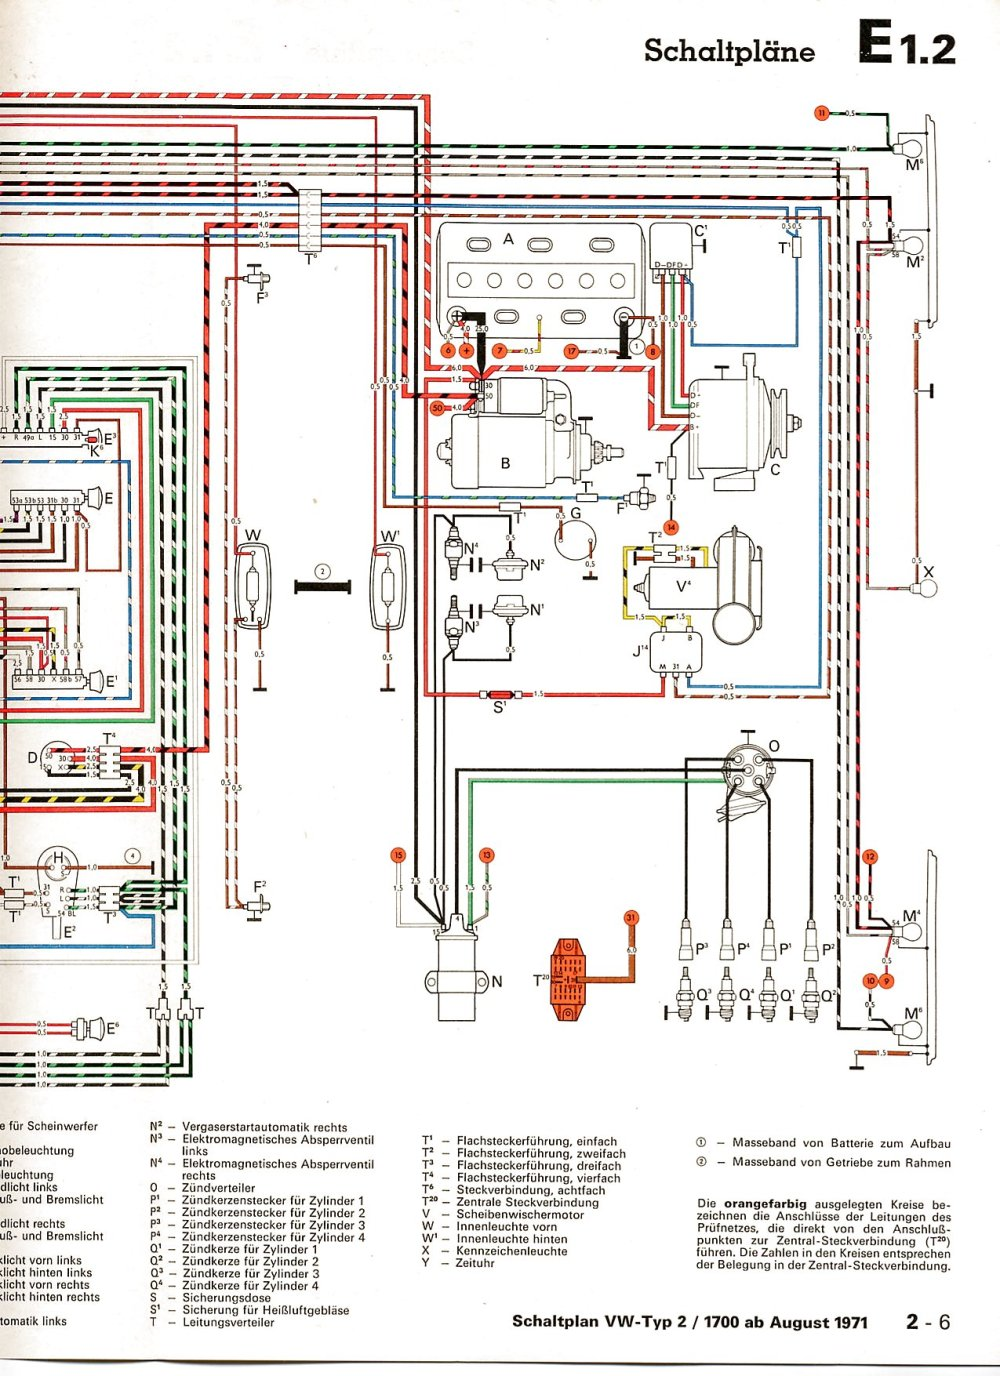 medium resolution of vw t2 wiring diagram 1973 schematic diagrams rh 11 fitness mit trampolin de type 1 vw engine diagram 2 0 vw type 2 engine diagram